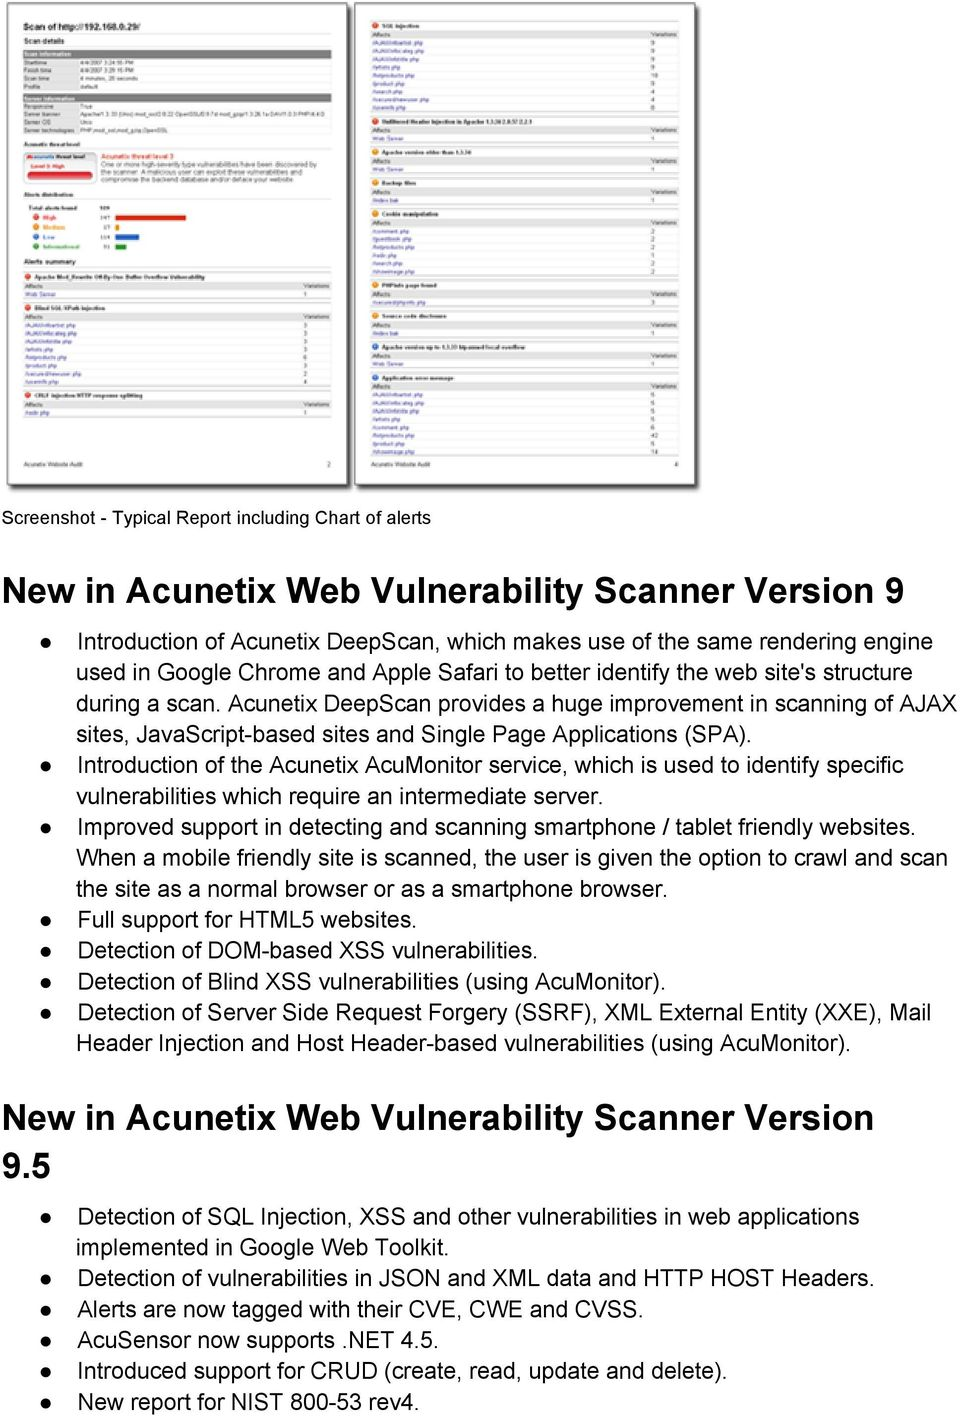 Acunetix DeepScan provides a huge improvement in scanning of AJAX sites, JavaScript based sites and Single Page Applications (SPA).